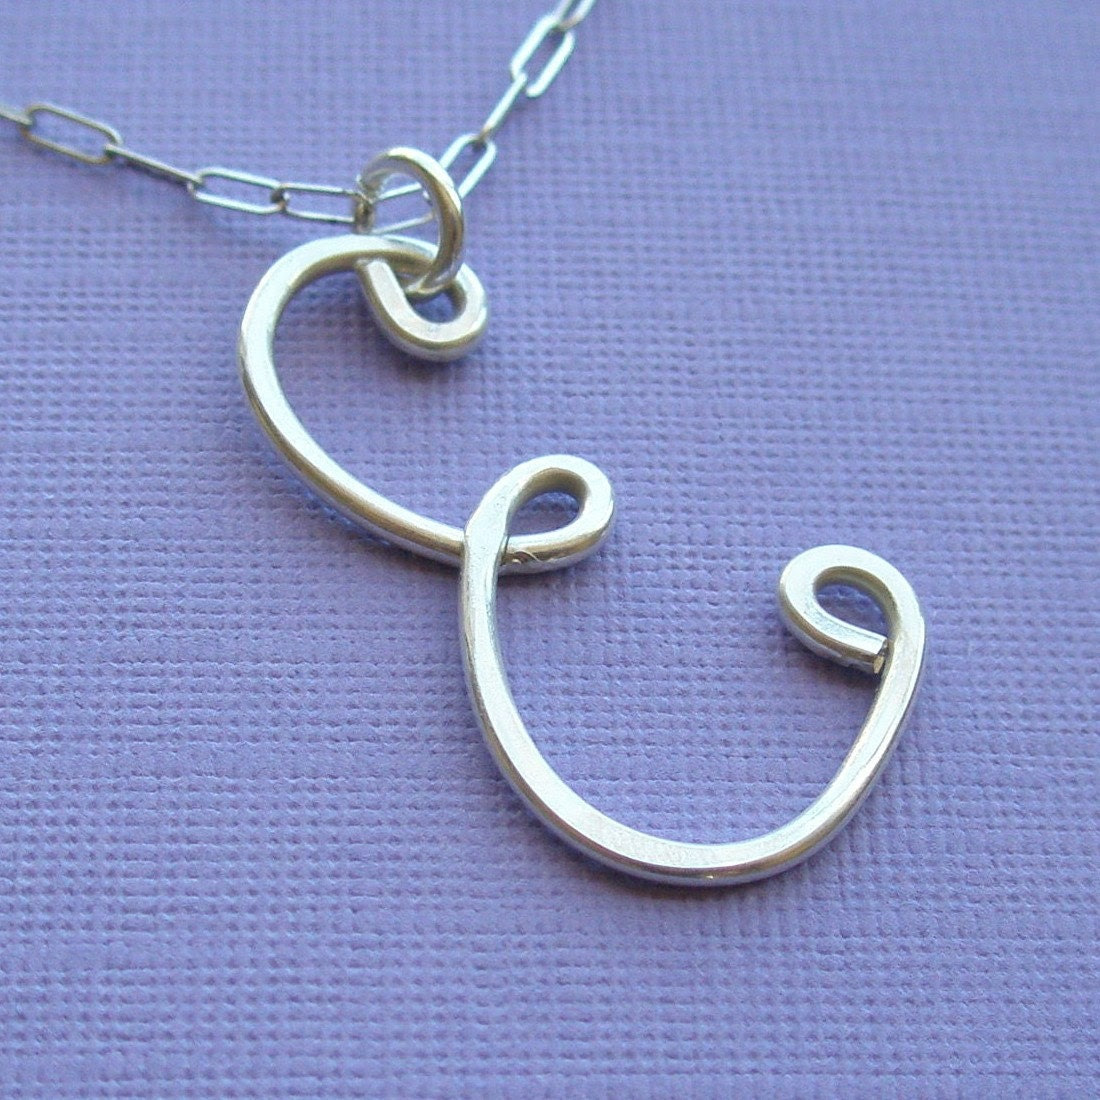 The Letter E Necklace - all sterling silver